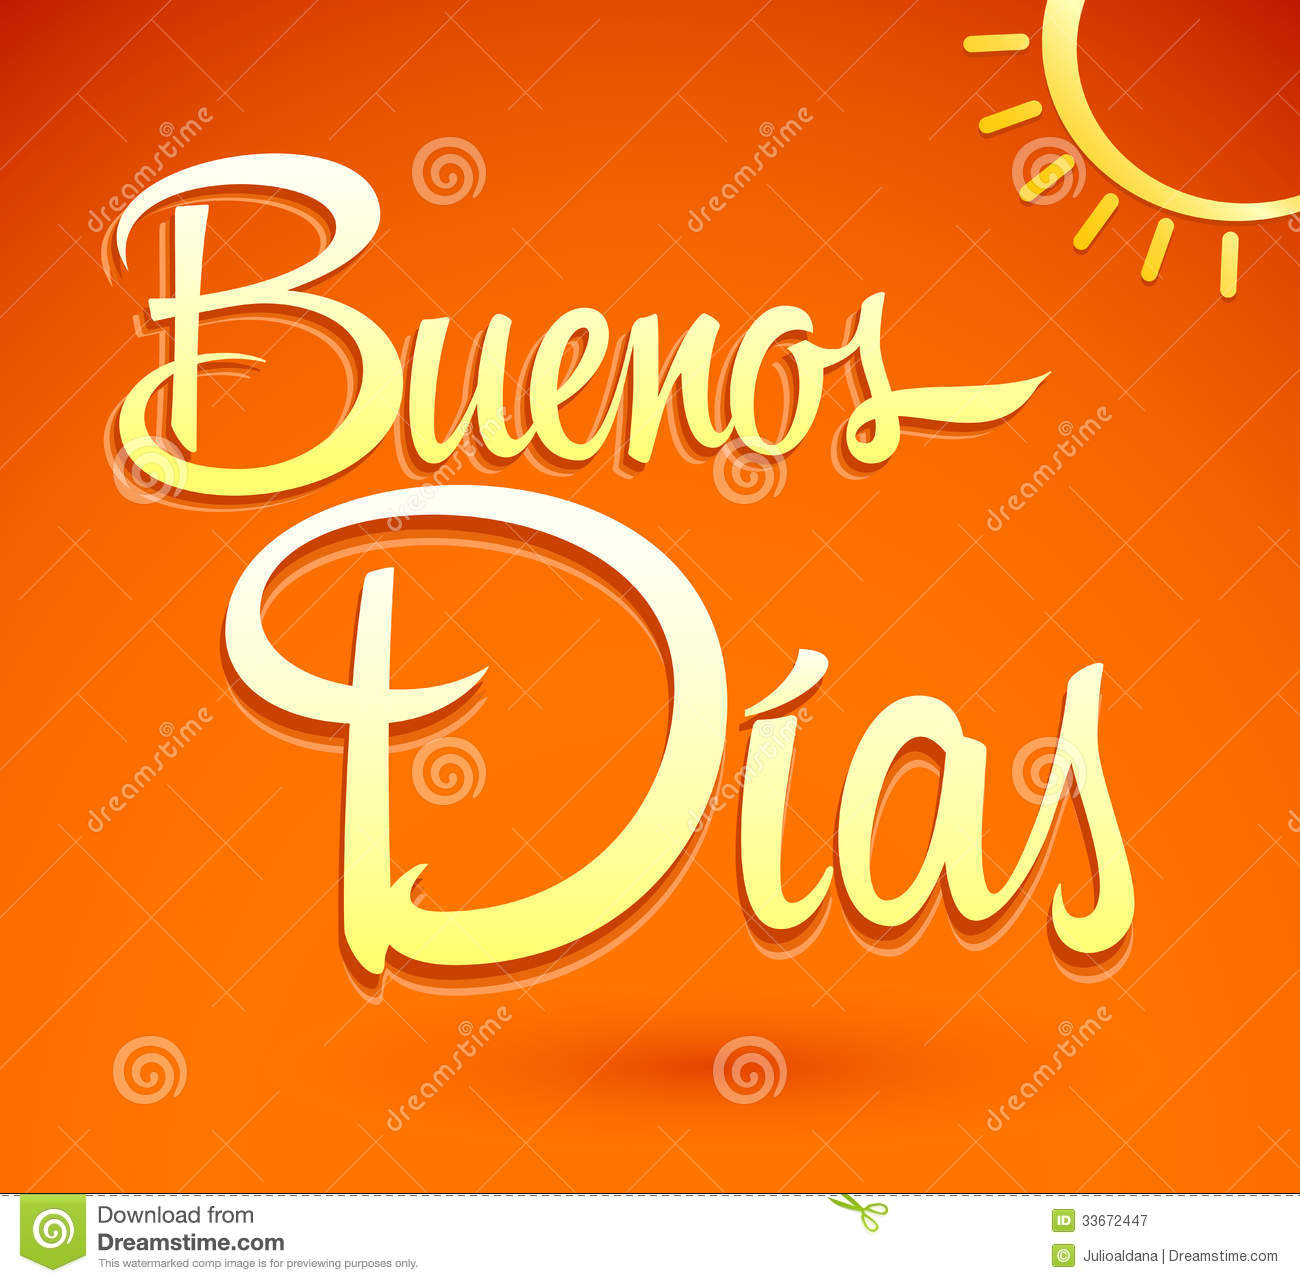 Good Morning In Spanish Is What : Buenos dias good morning spanish text lettering royalty